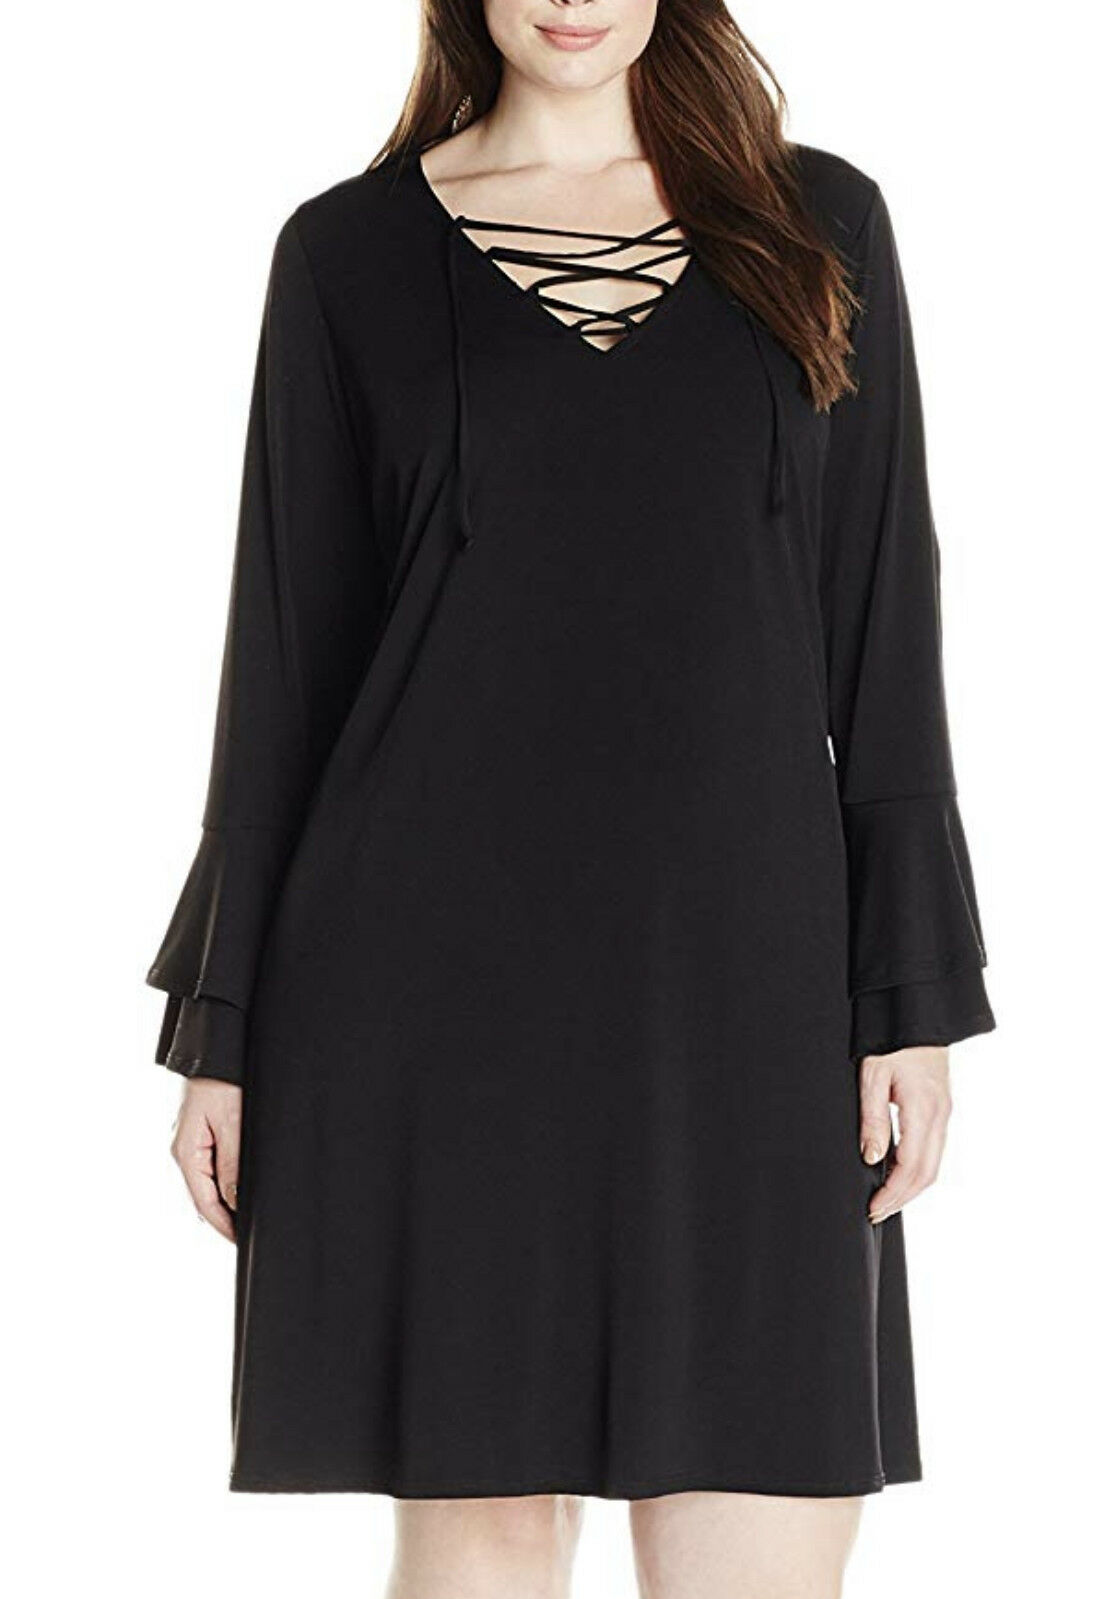 NEW  Karen Kane Plus Laced Neck Ruffle Sleeves schwarz Dress 3X Retail